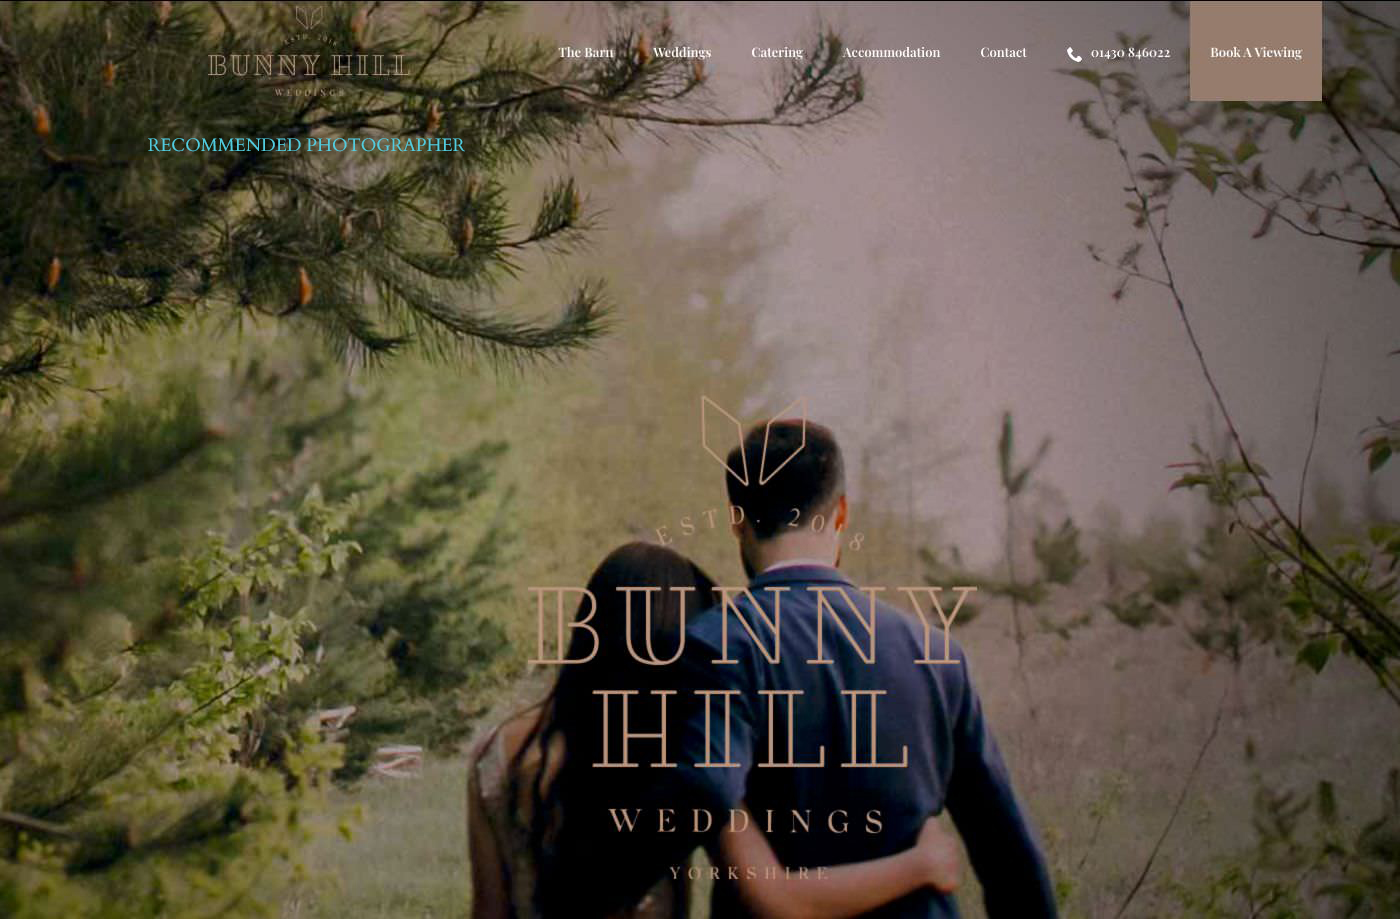 Bunny Hill Weddings homepage screenshot